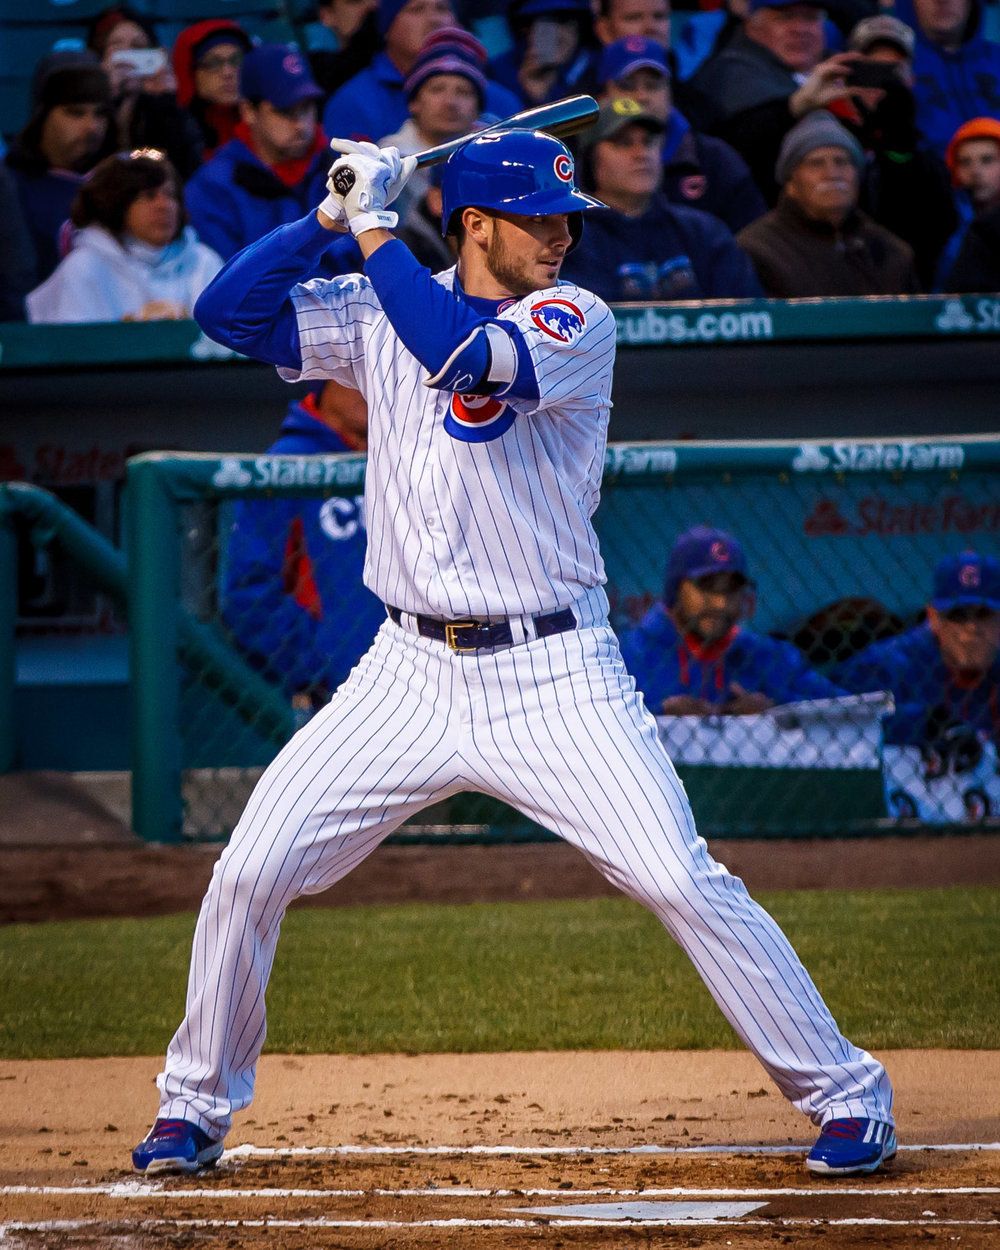 Cubs third baseman Kris Bryant stands at the plate during a game at Wrigley Field.